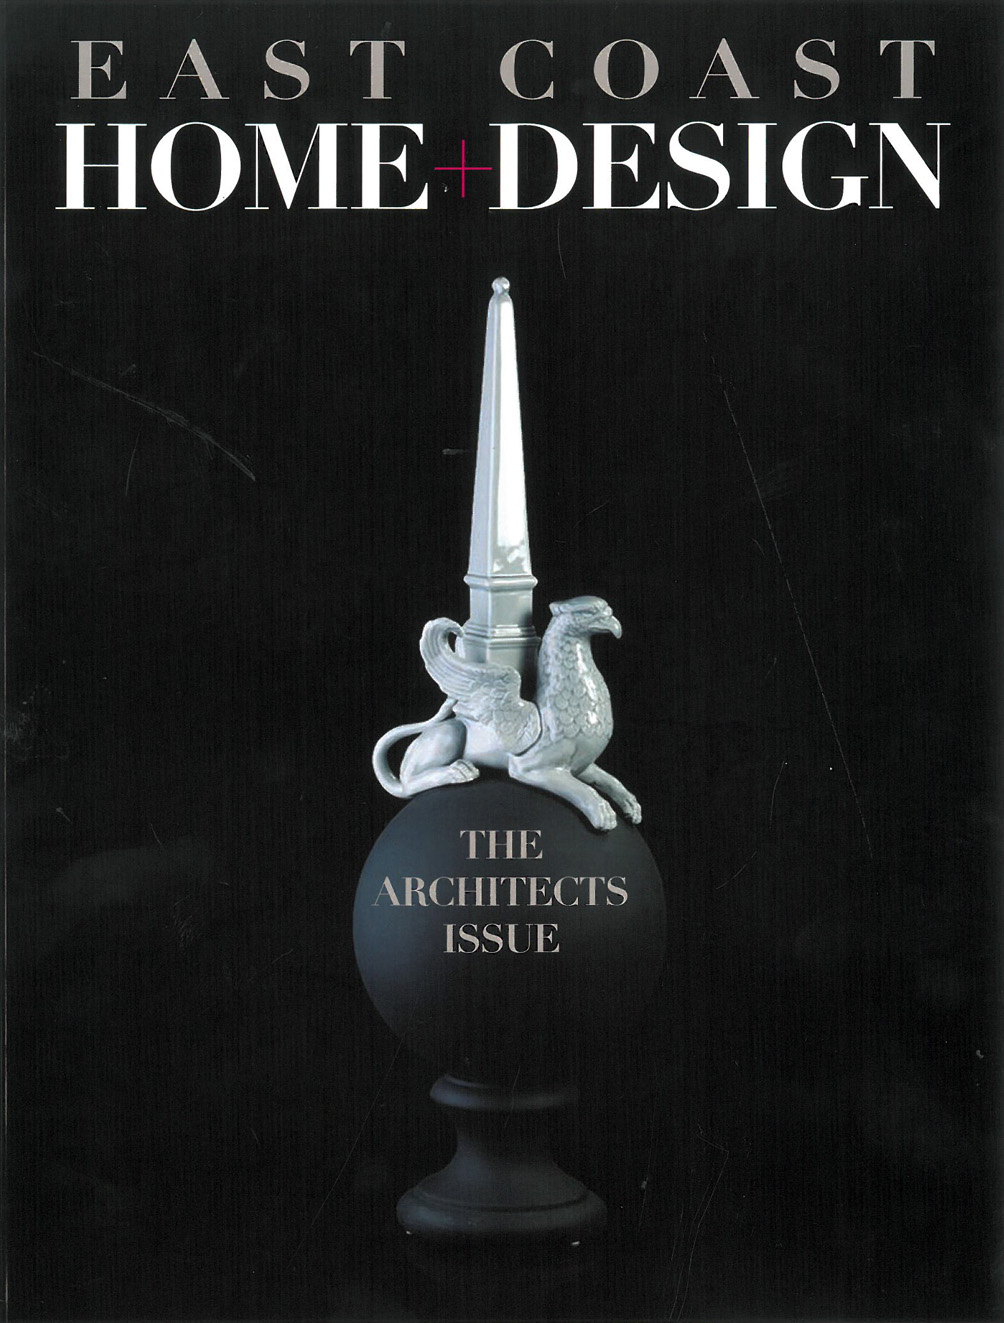 East Coast Home and Design Architects Issue